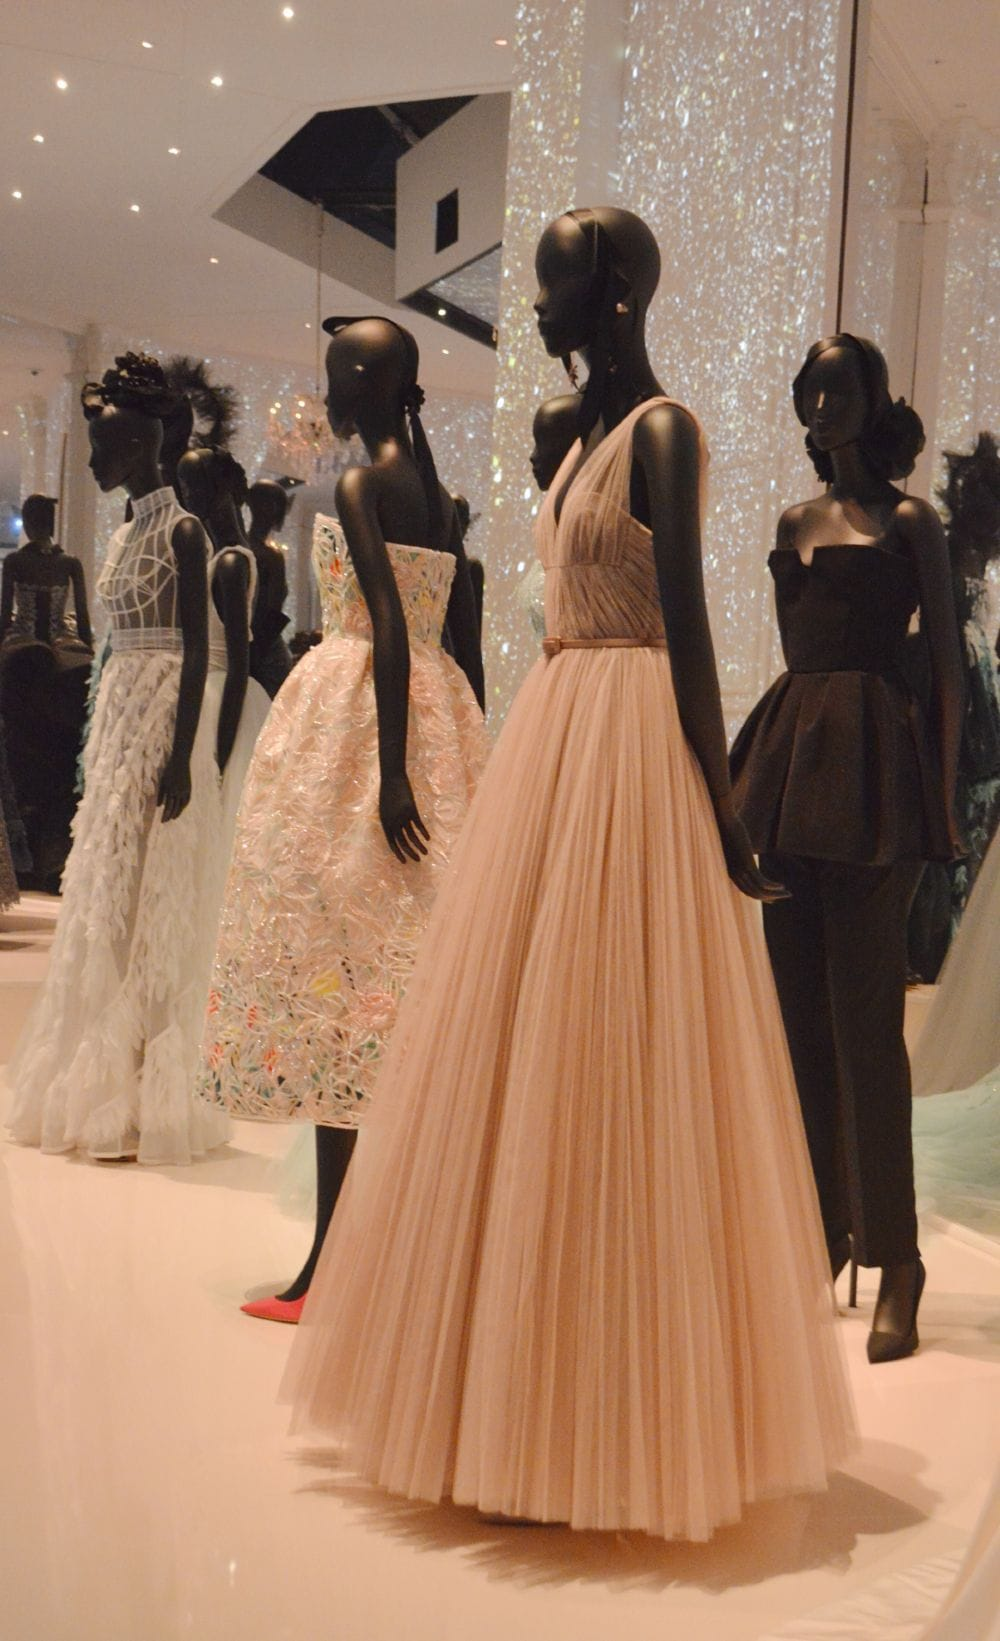 Vintage Christian Dior gowns